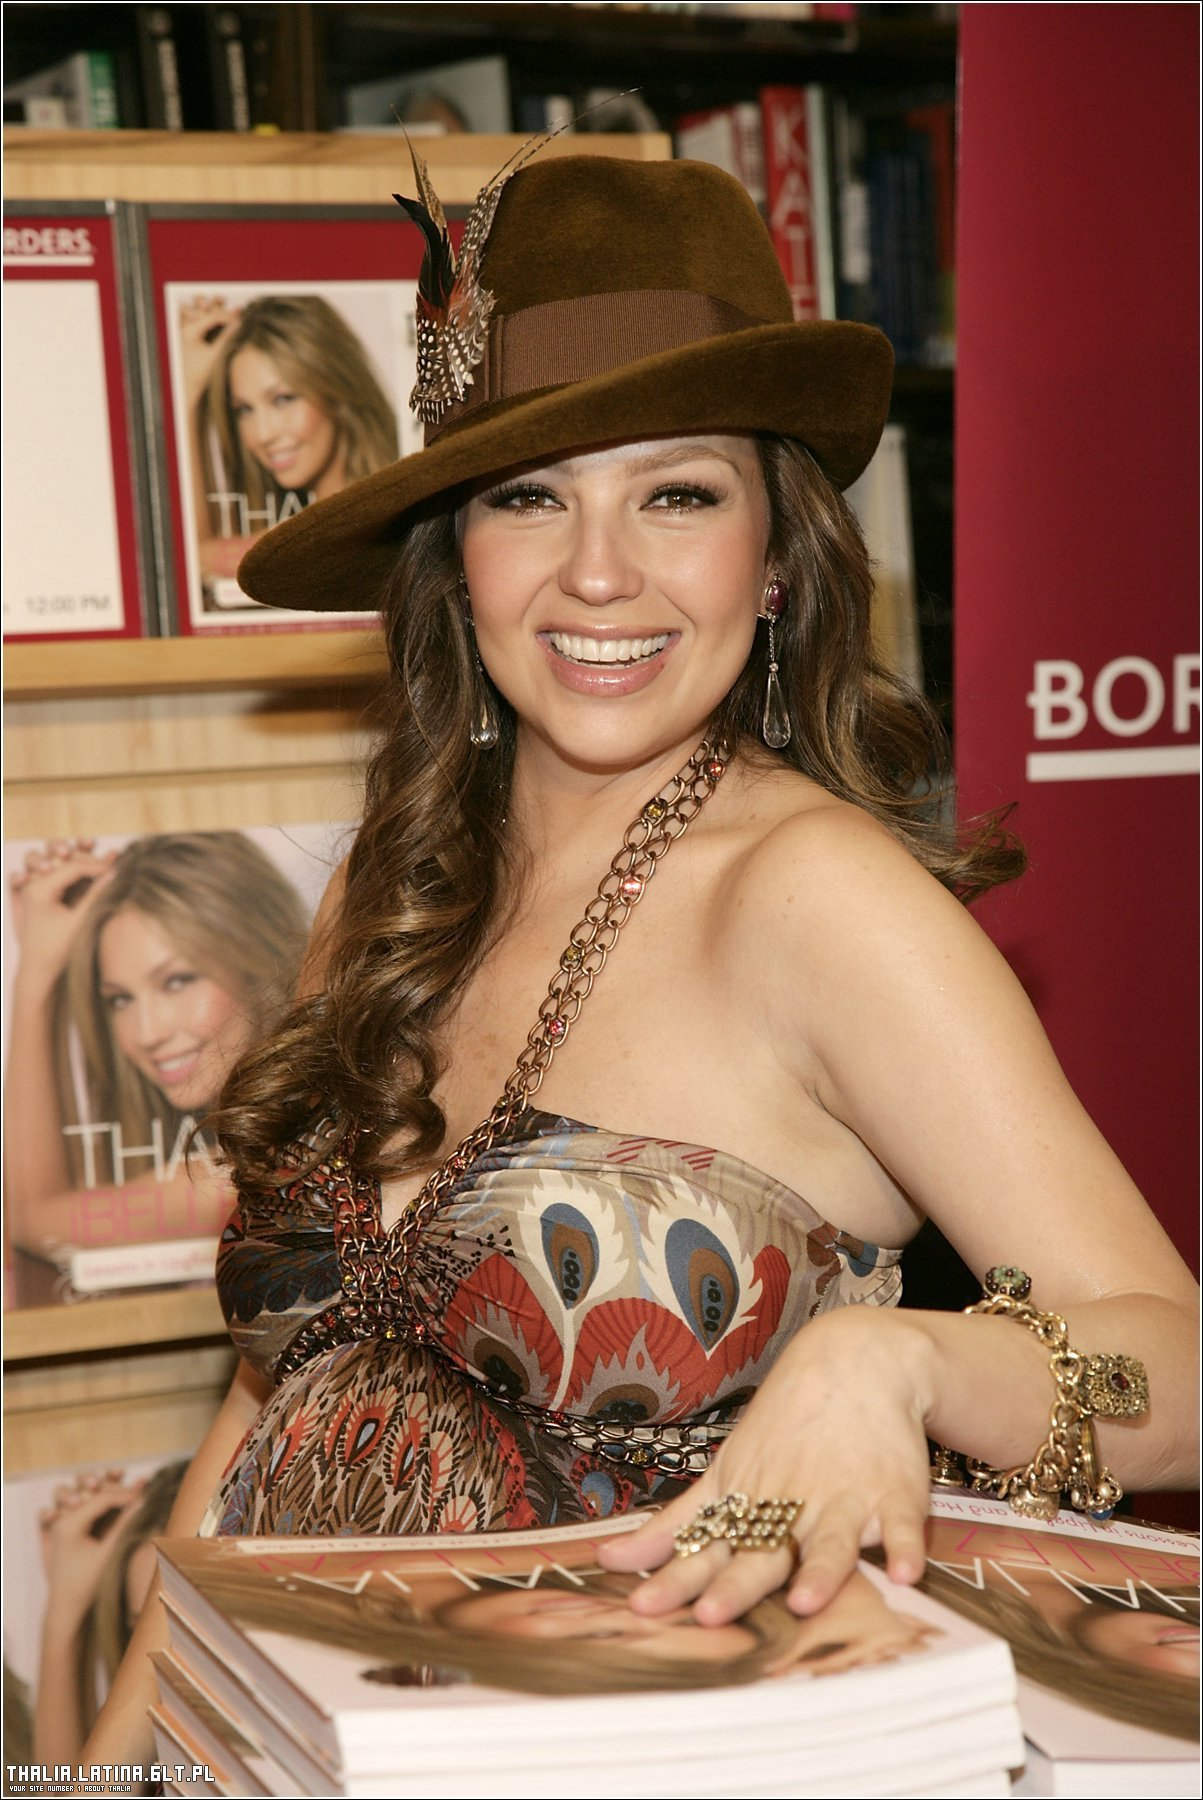 http://images2.fanpop.com/images/photos/6700000/Thalia-thalia-6709153-1203-1800.jpg